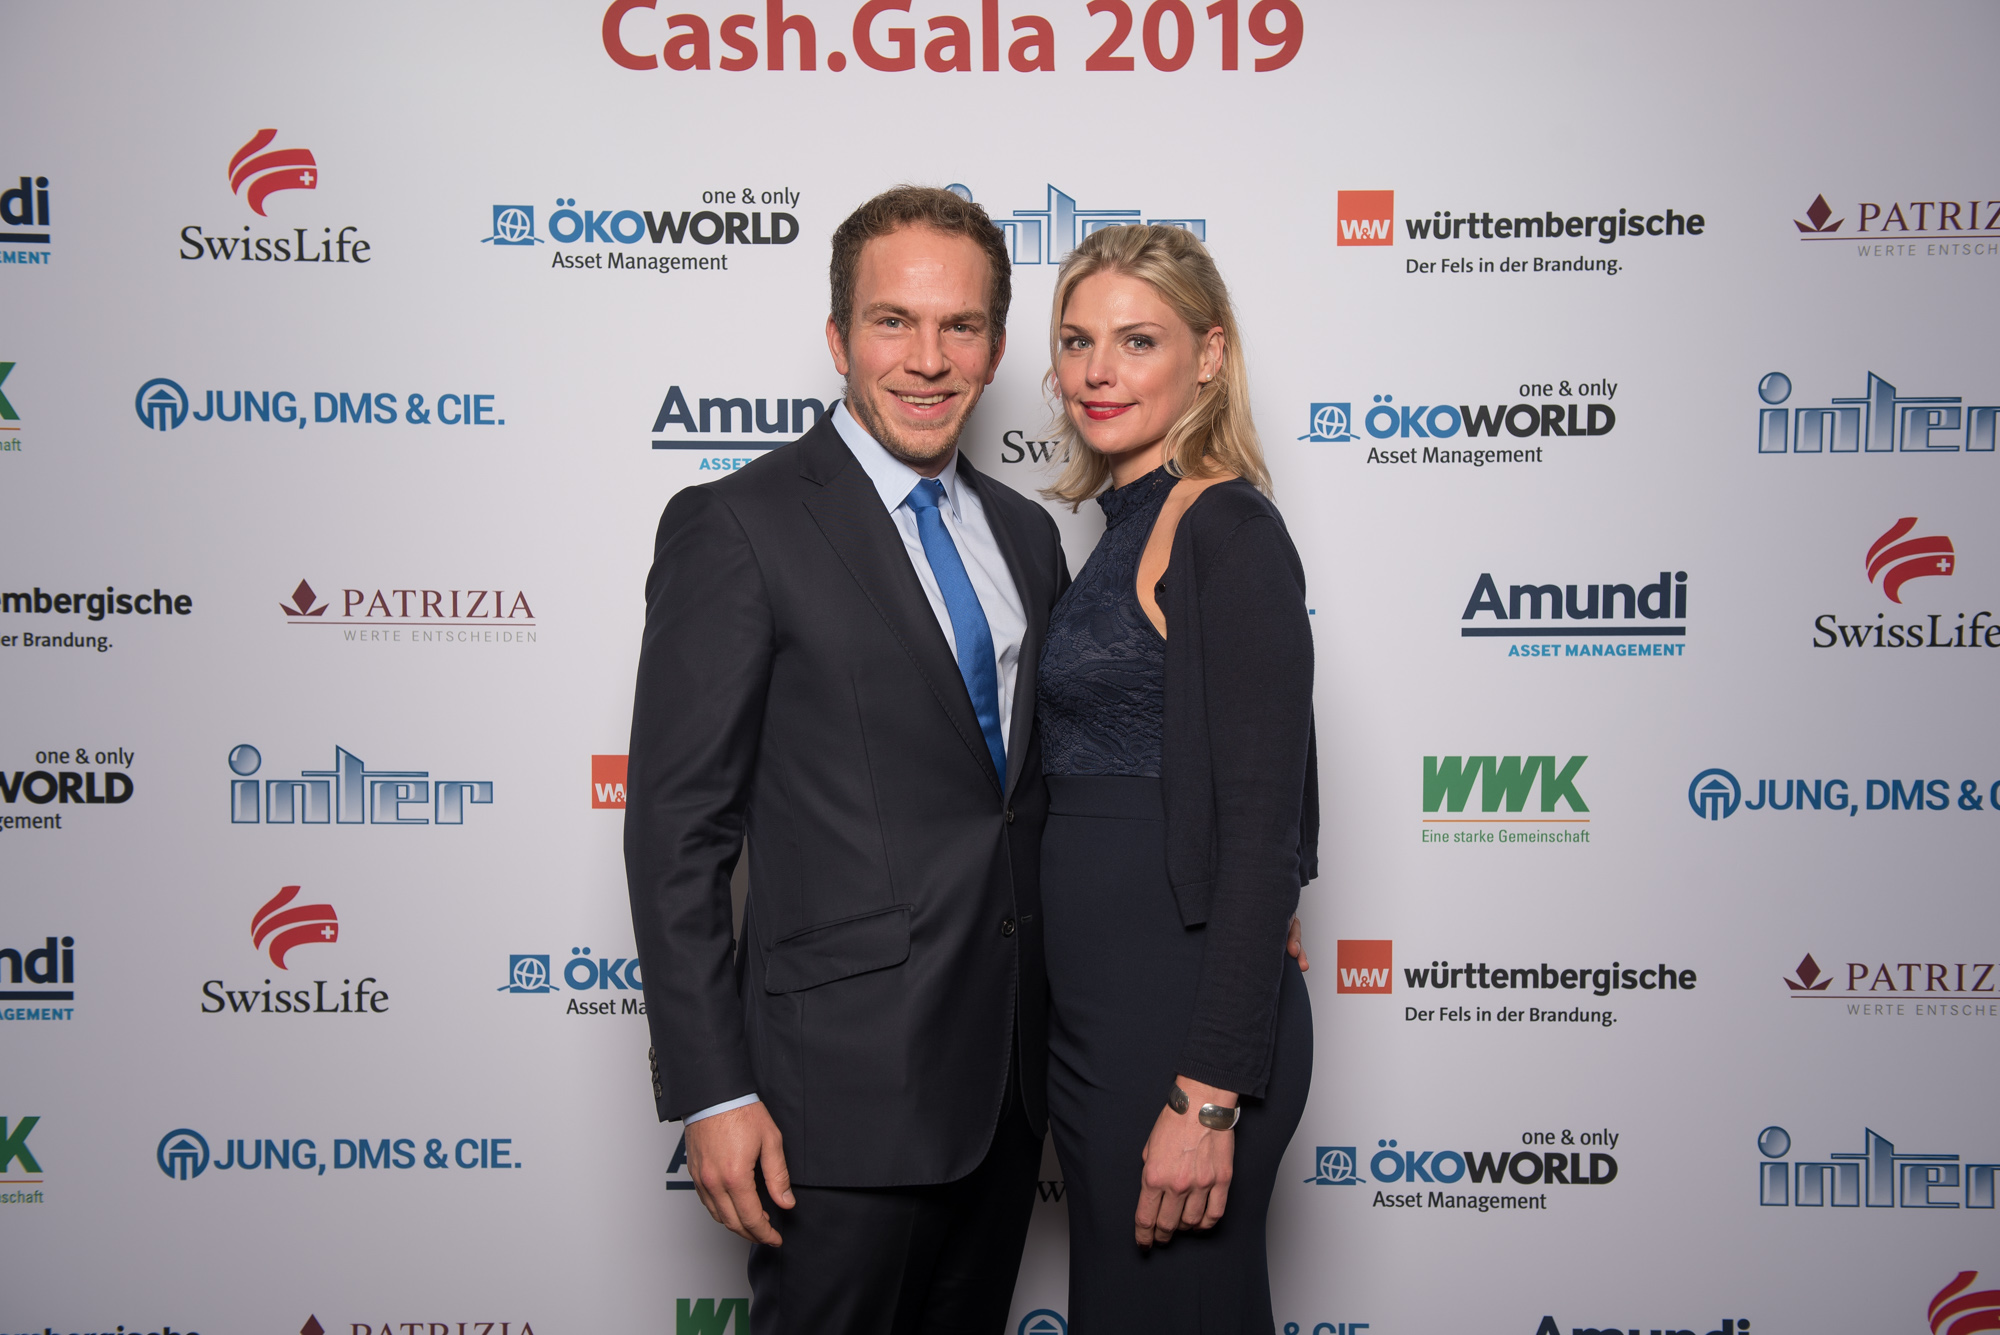 CashGala 2019 0064 AM DSC7133 in Cash.Gala 2019